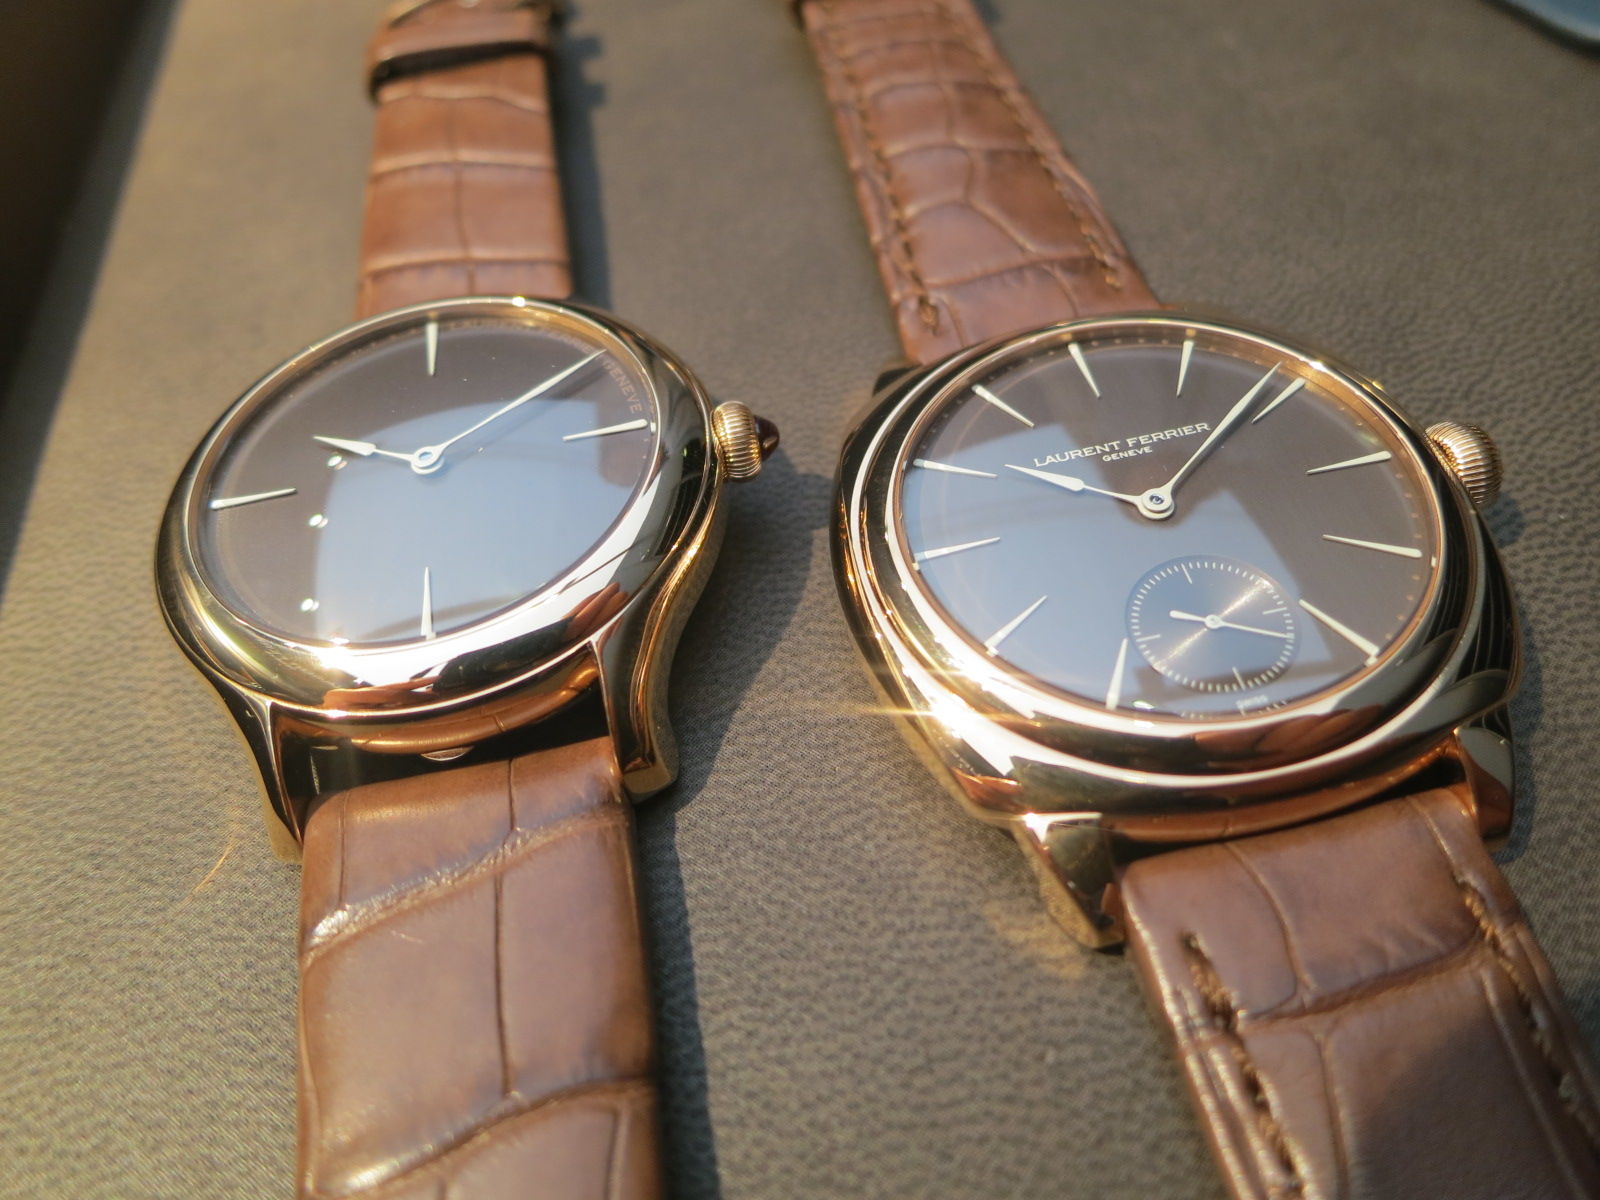 Laurent Ferrier chocolate collection